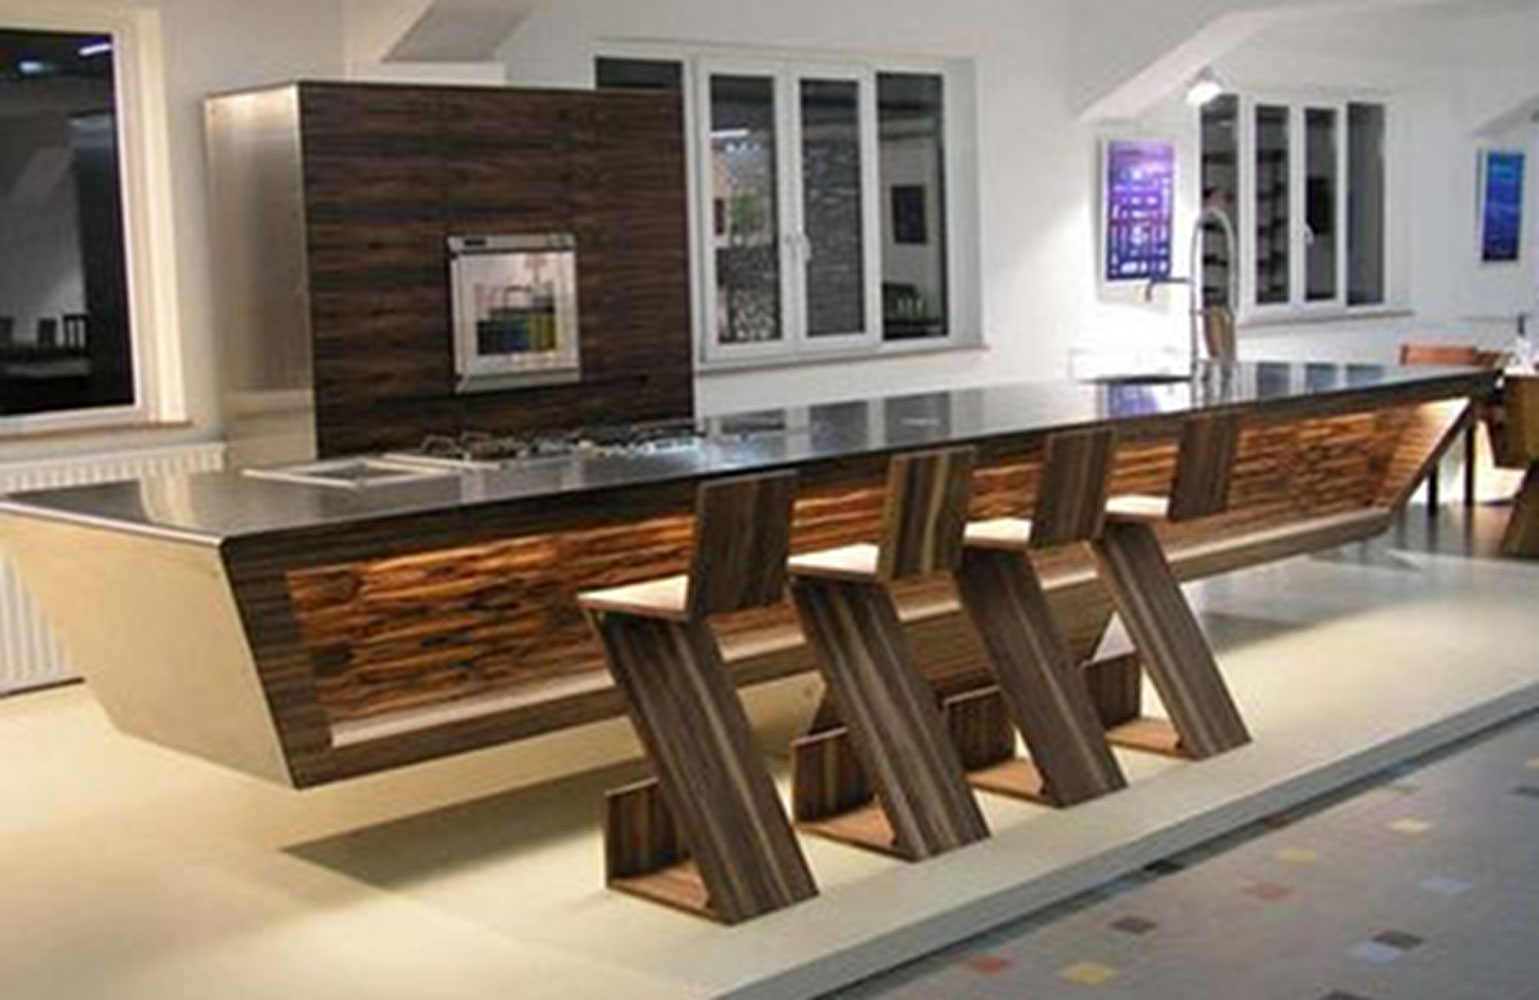 Metal wood a match made in interior design heaven huffpost Kitchen design pictures modern